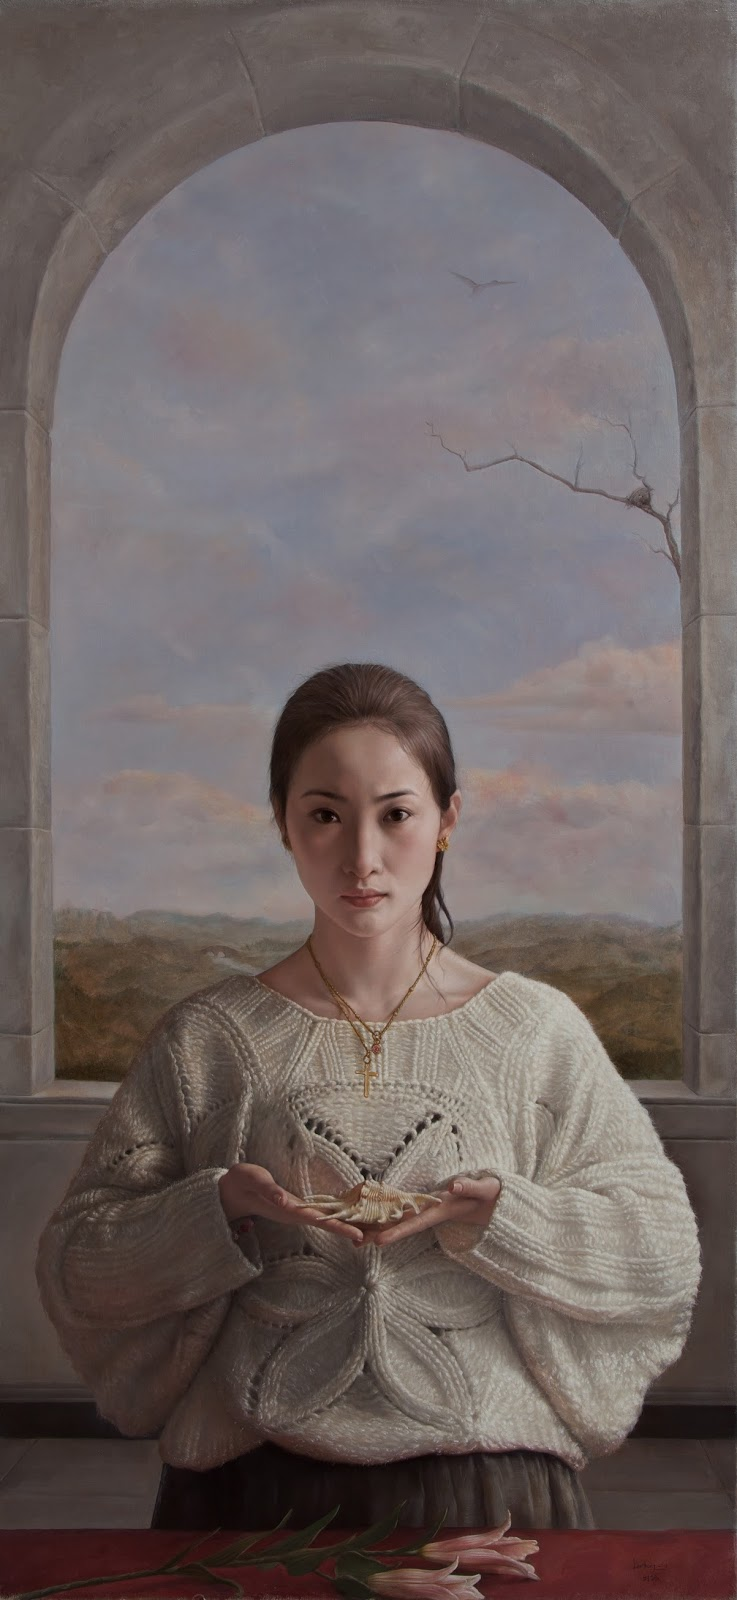 Paintings By 刘诚 Liu Cheng Fine Art and You Painting